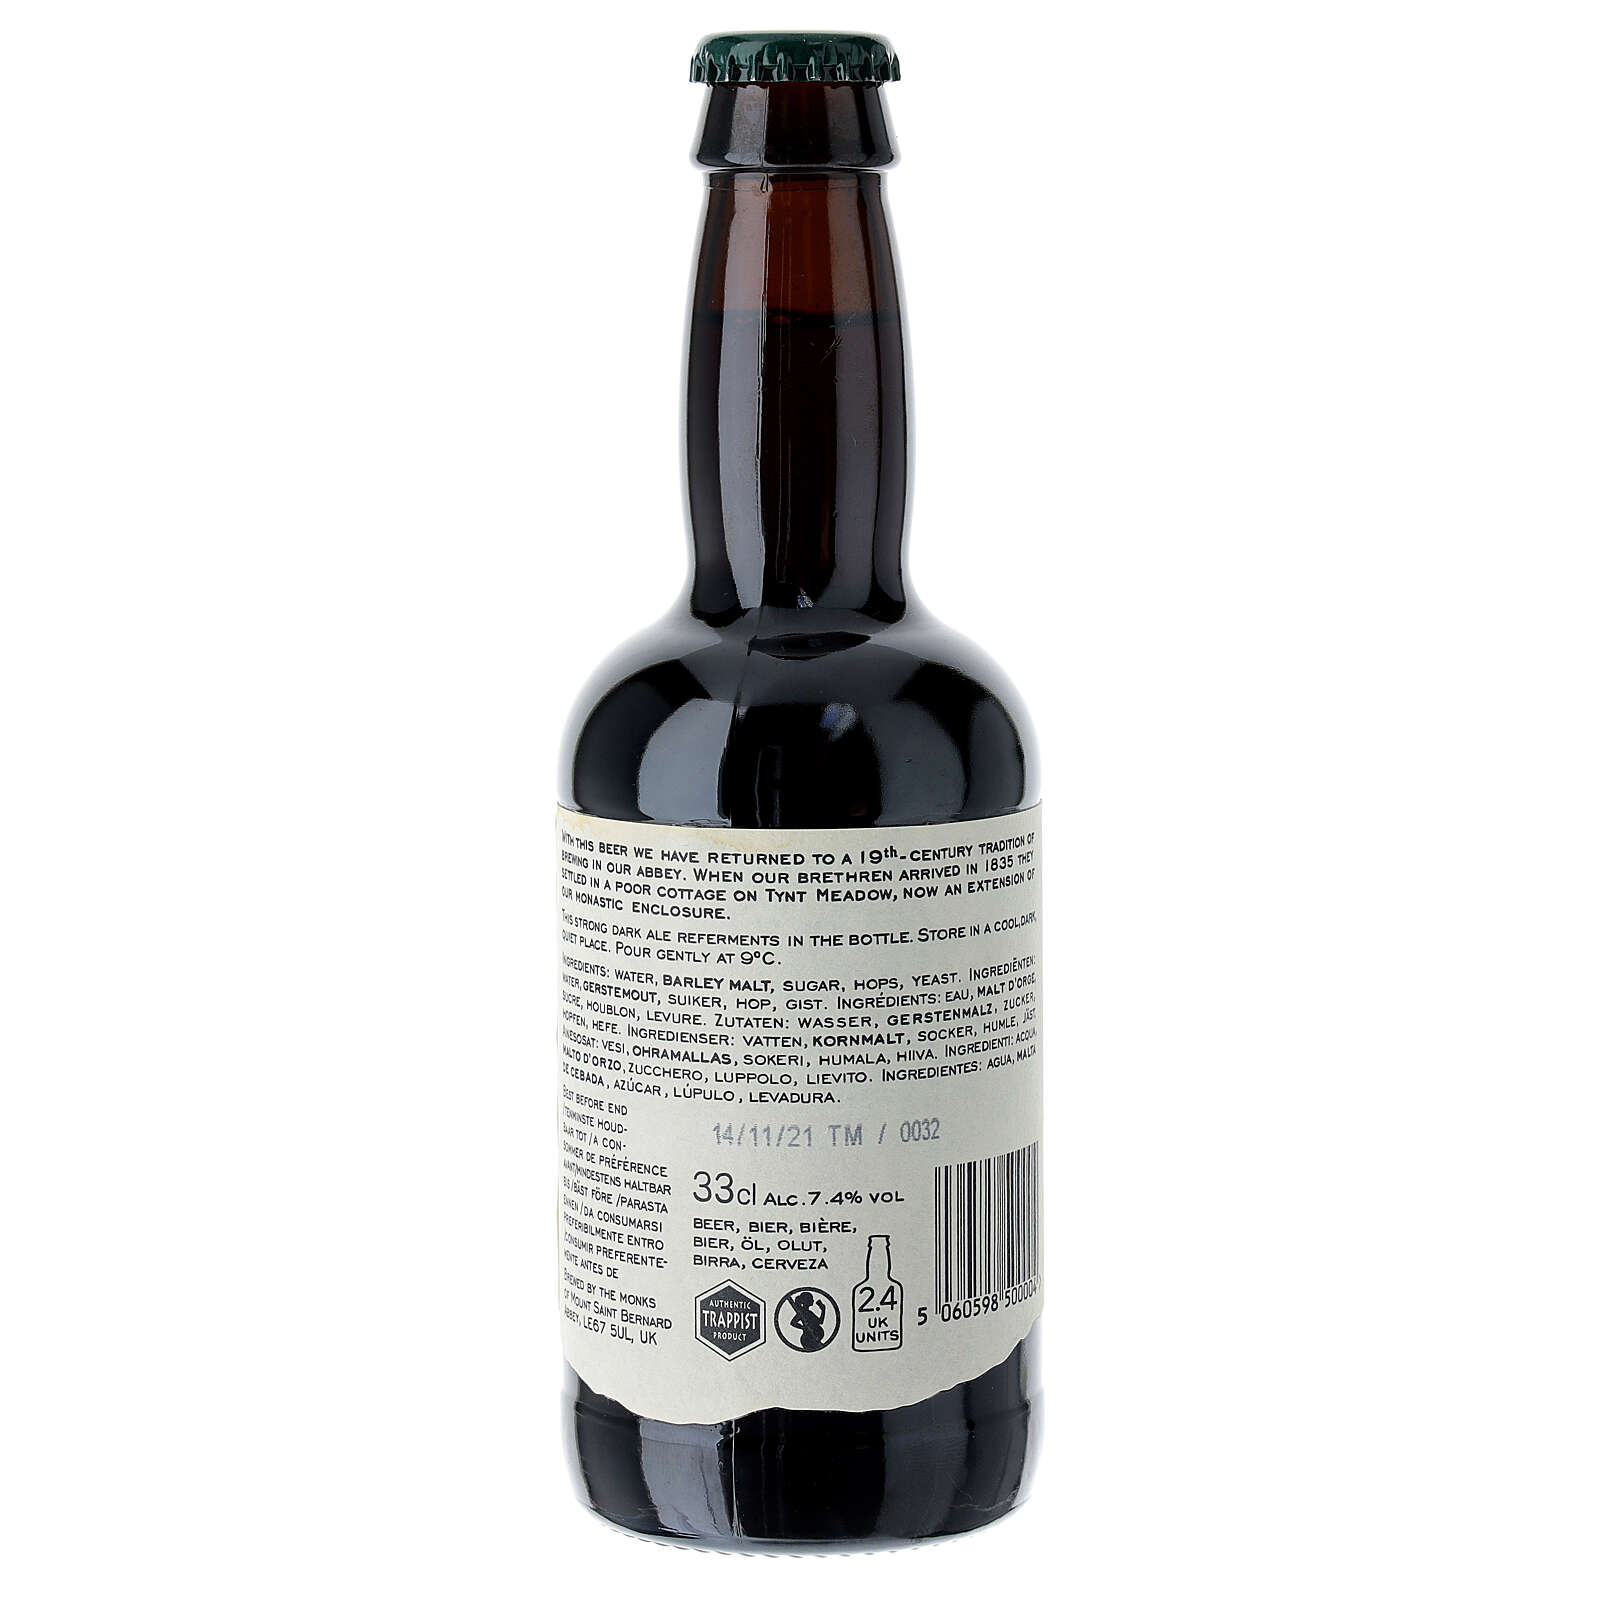 Tynt Meadow Dark English Trappist Beer 33 cl 3